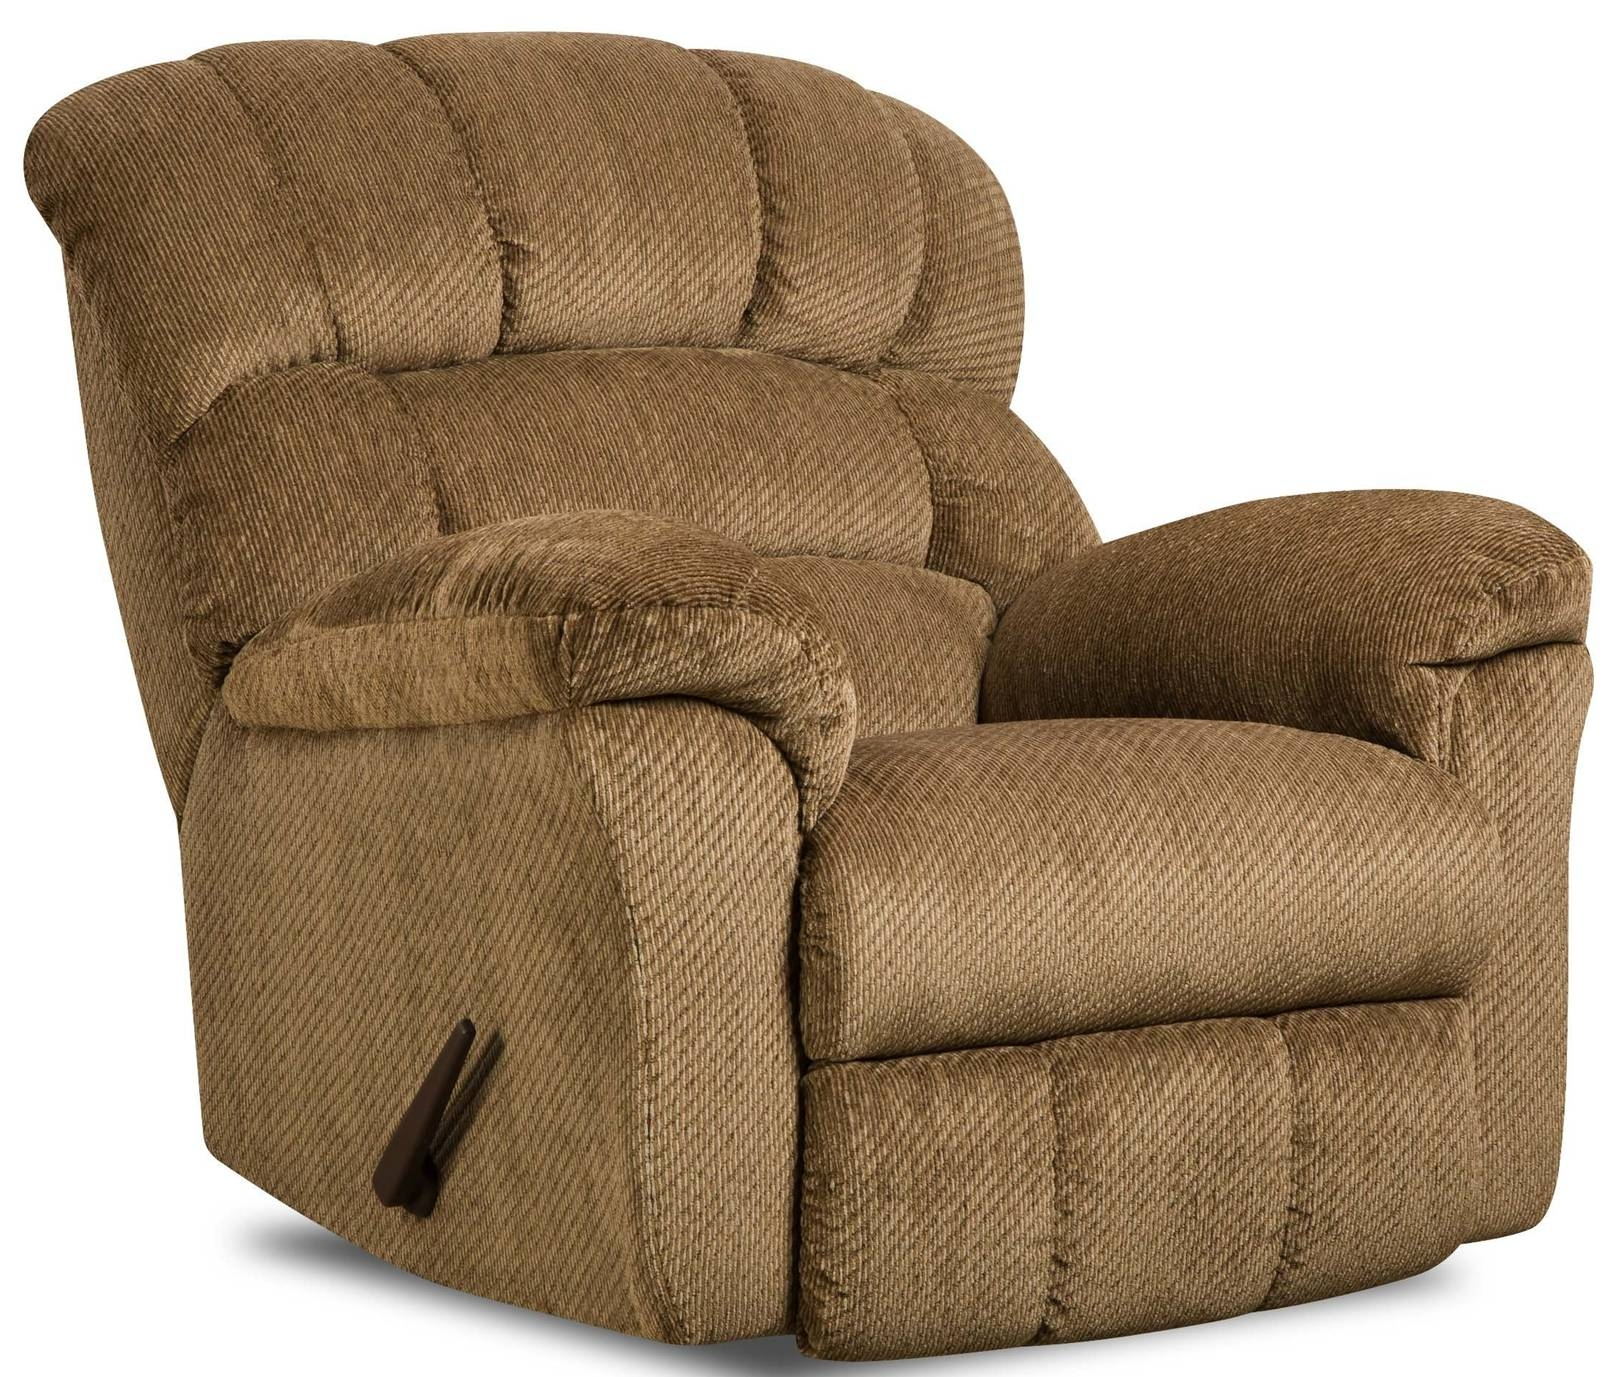 sears recliner chairs best gaming chair uk simmons upholstery victor amber shop living